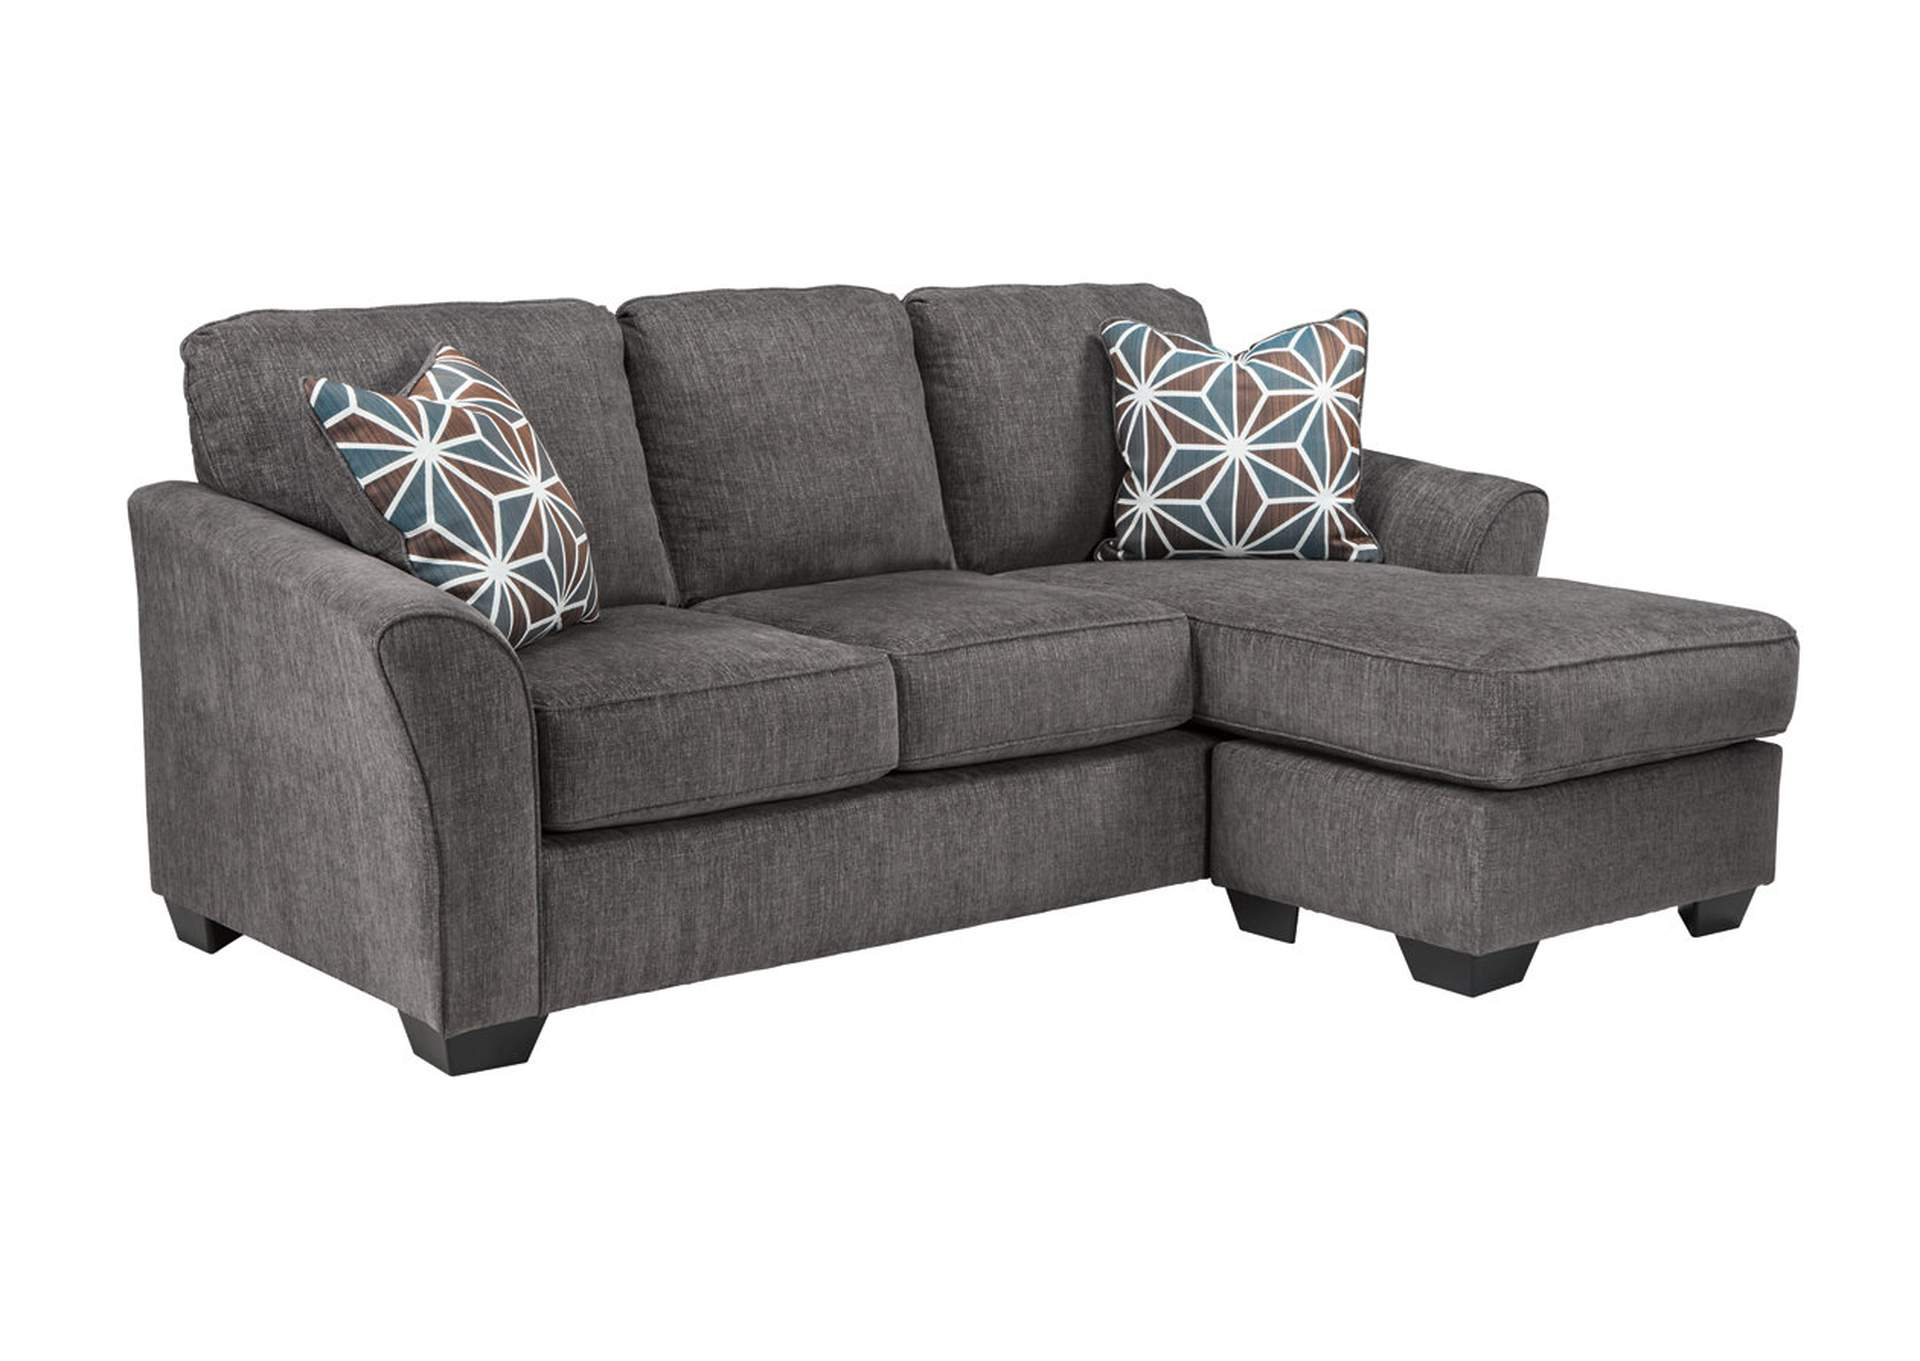 Brise Slate Sofa Chaise,Benchcraft